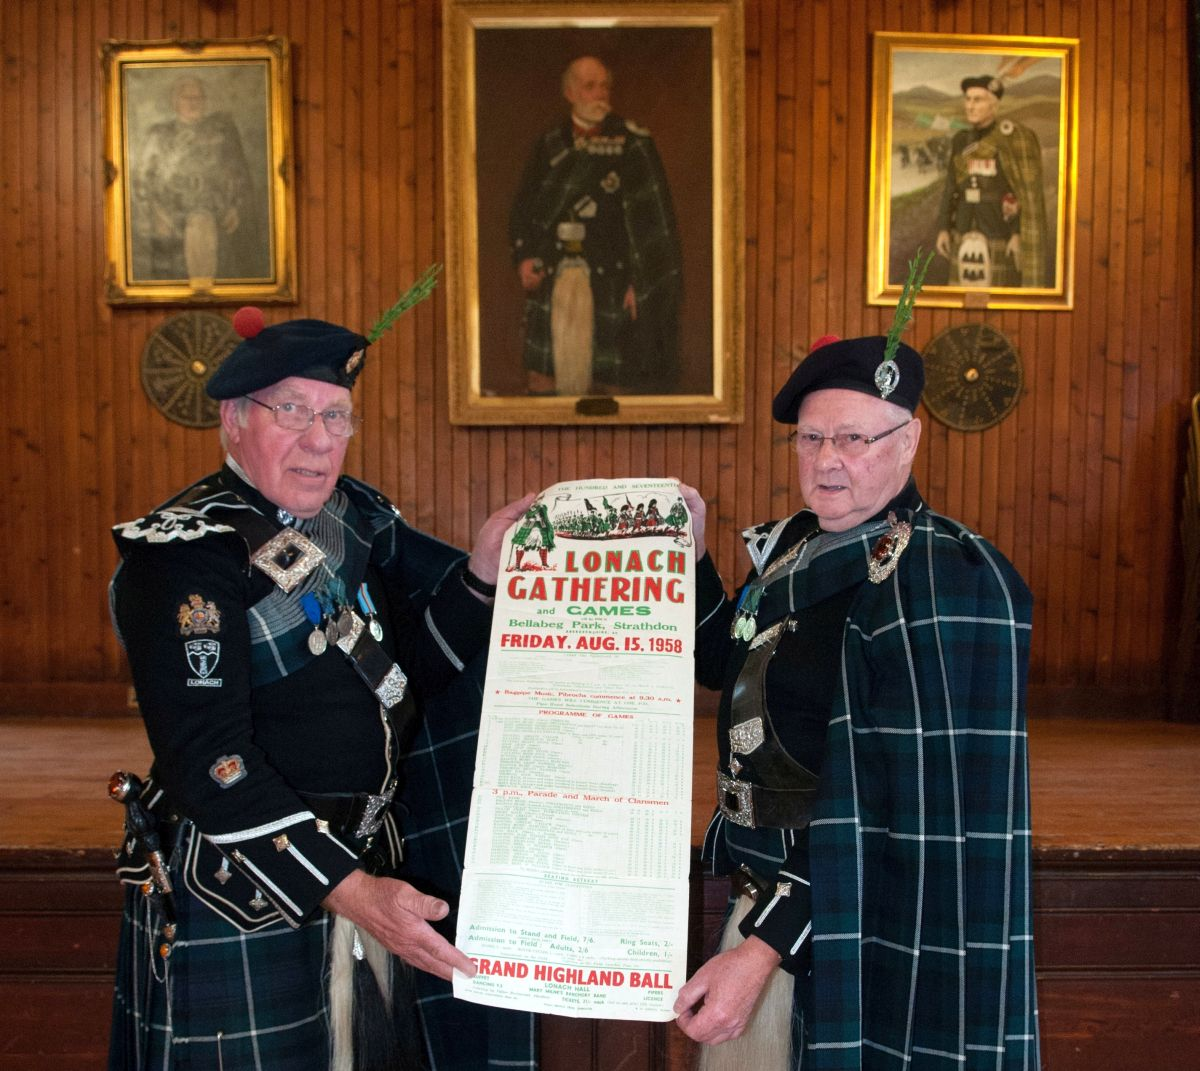 2. Lonach Highlanders (L to R) George Thomson and Willie Coutts with a poster promoting the 1958 Lonach Highland Gathering and Games